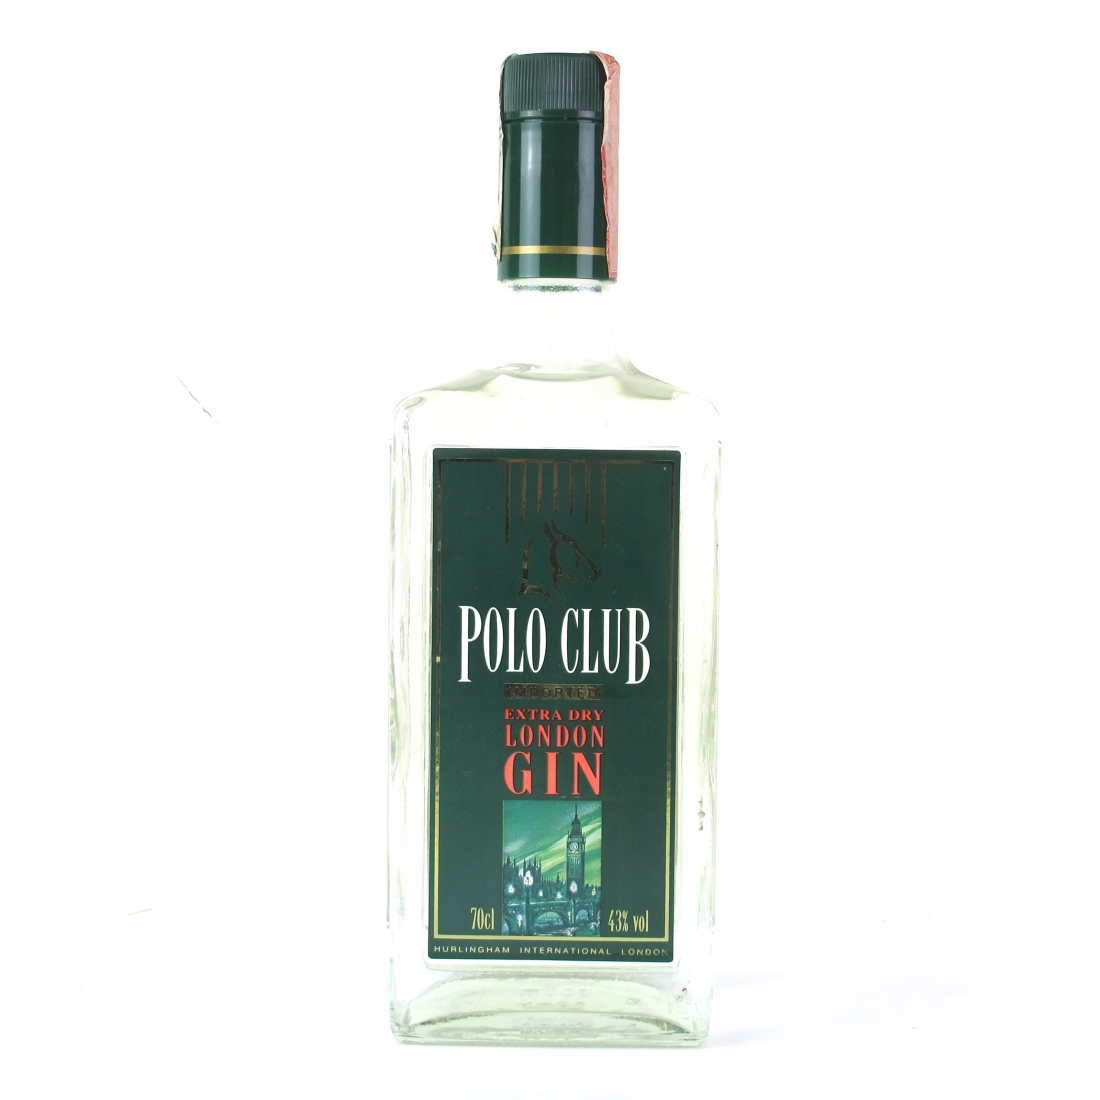 Polo Club London Dry Gin